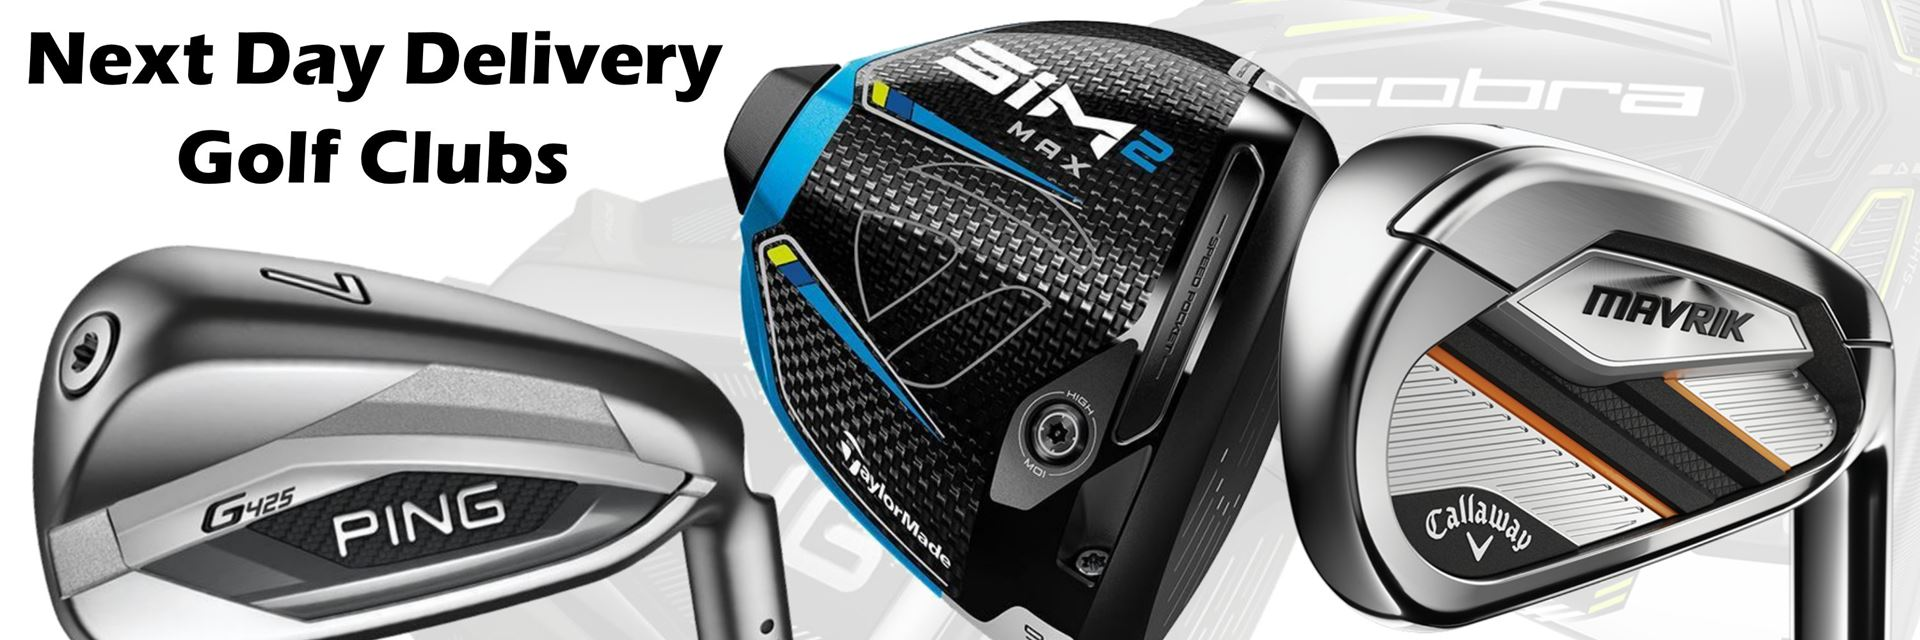 Next Day Delivery golf equipment